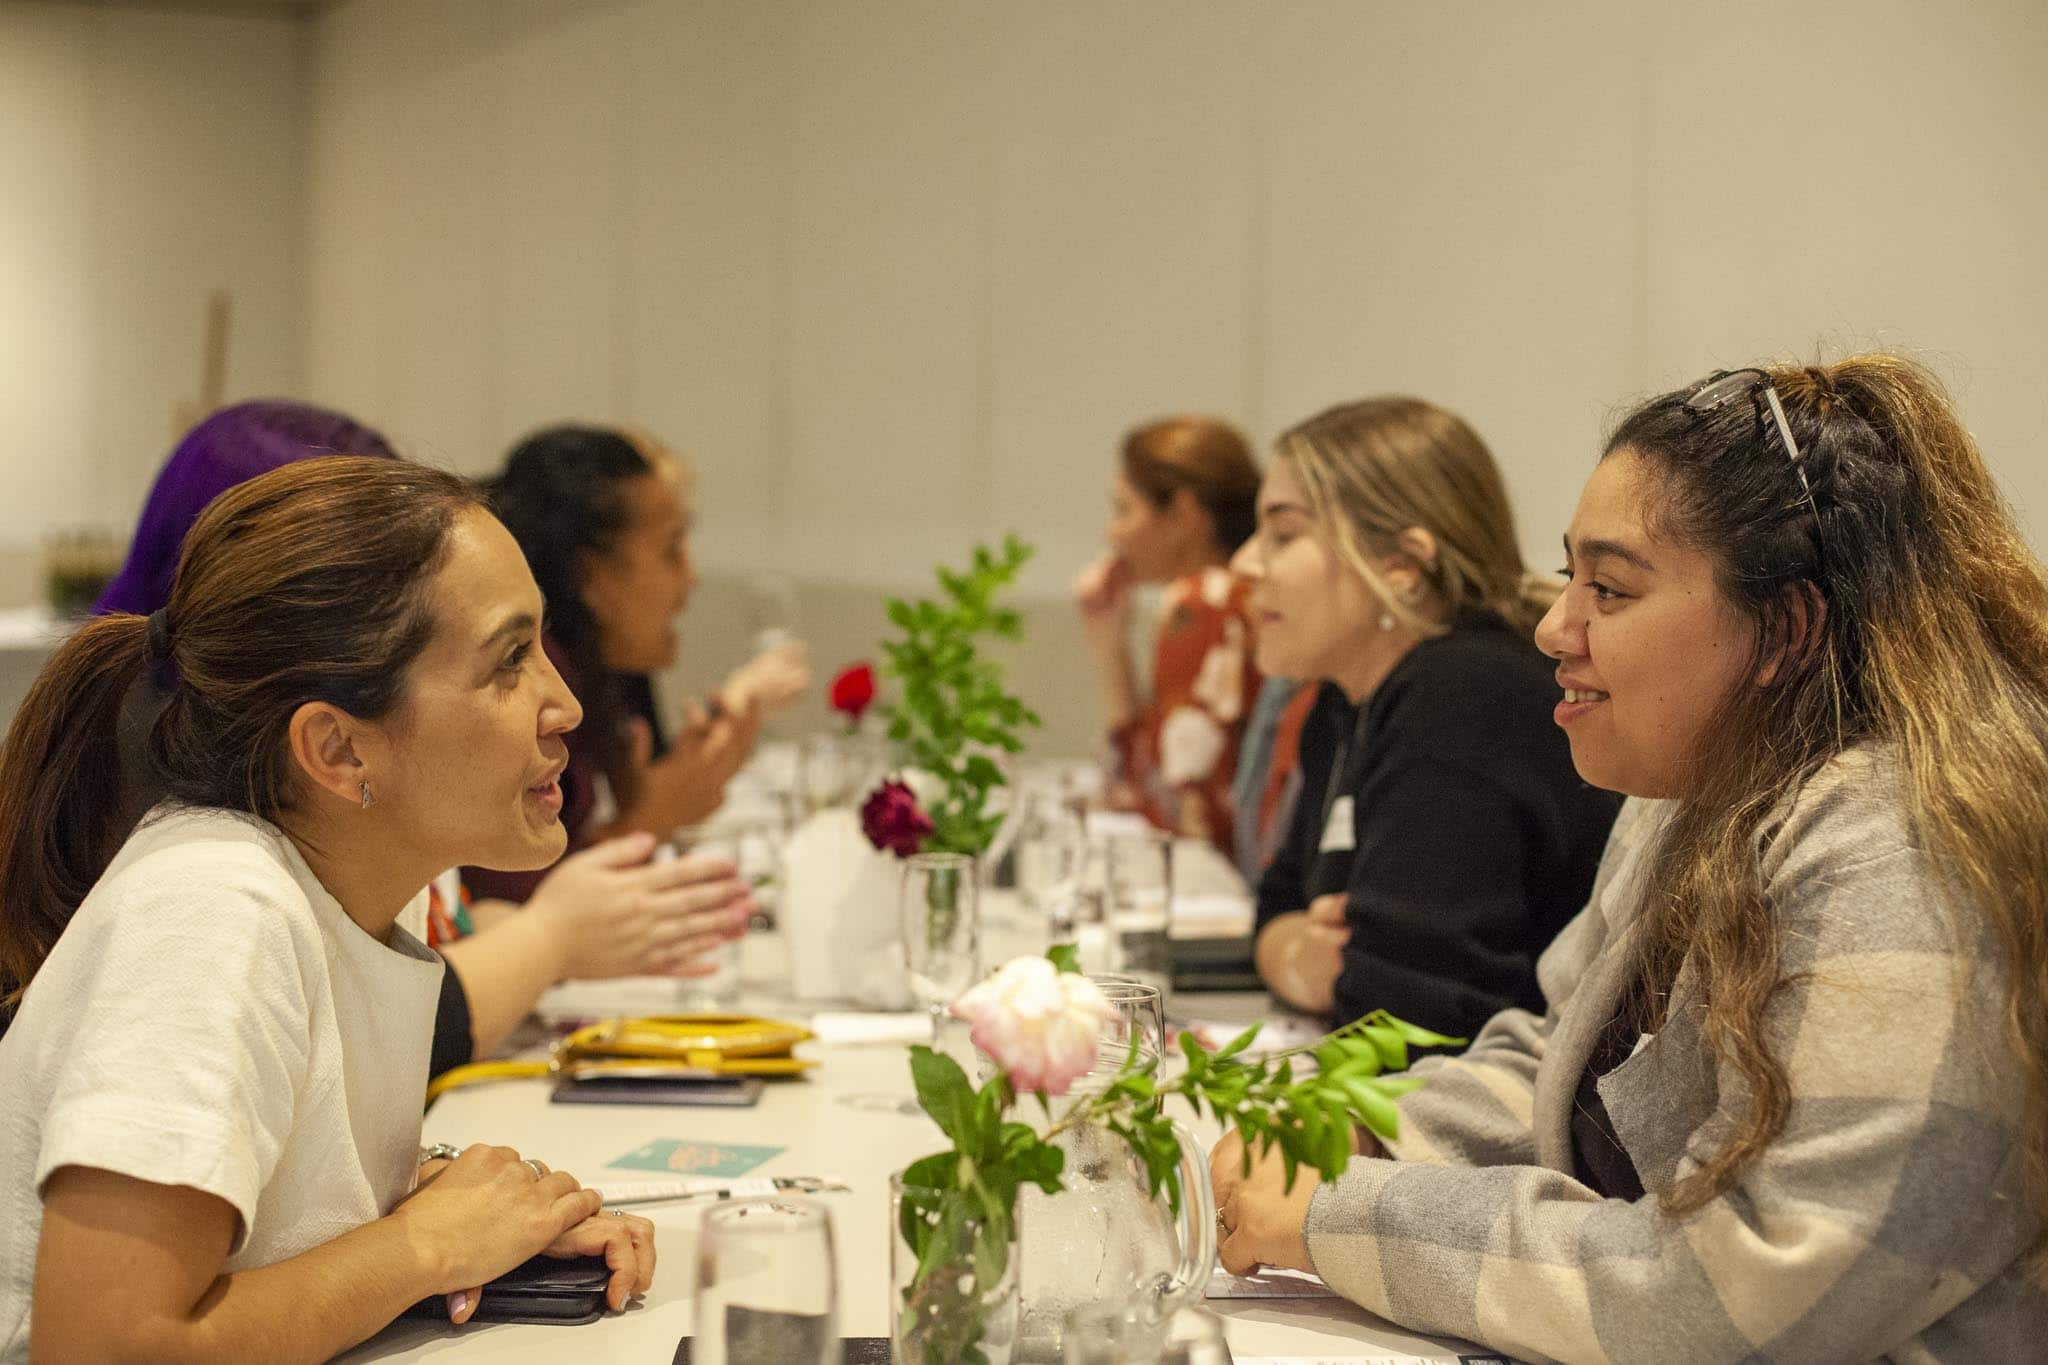 Speed Networking & New Program Launch - https://www.griffithwomeninbusiness.org/wp-content/uploads/2021/06/GWIB-Speed-Networking-2021-IMG_0909-2048px.jpg